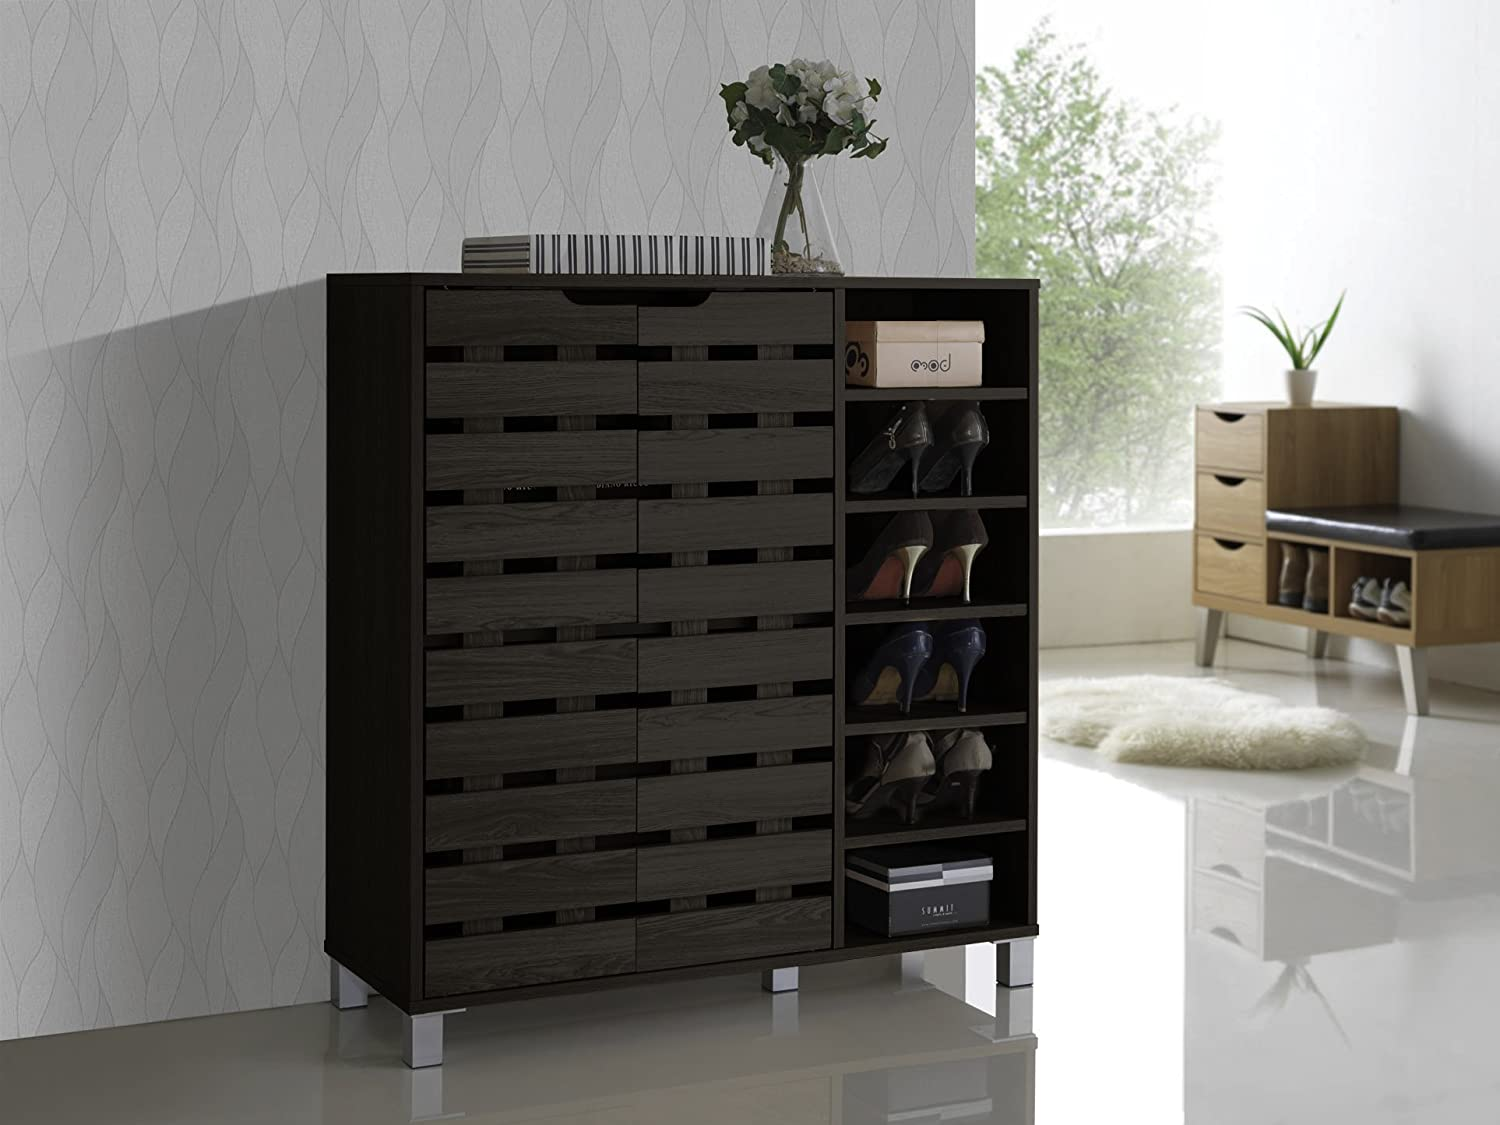 Amazon.com Baxton Studio Shirley Modern u0026 Contemporary Wood 2-Door Shoe Cabinet with Open Shelves Dark Brown Kitchen u0026 Dining & Amazon.com: Baxton Studio Shirley Modern u0026 Contemporary Wood 2-Door ...